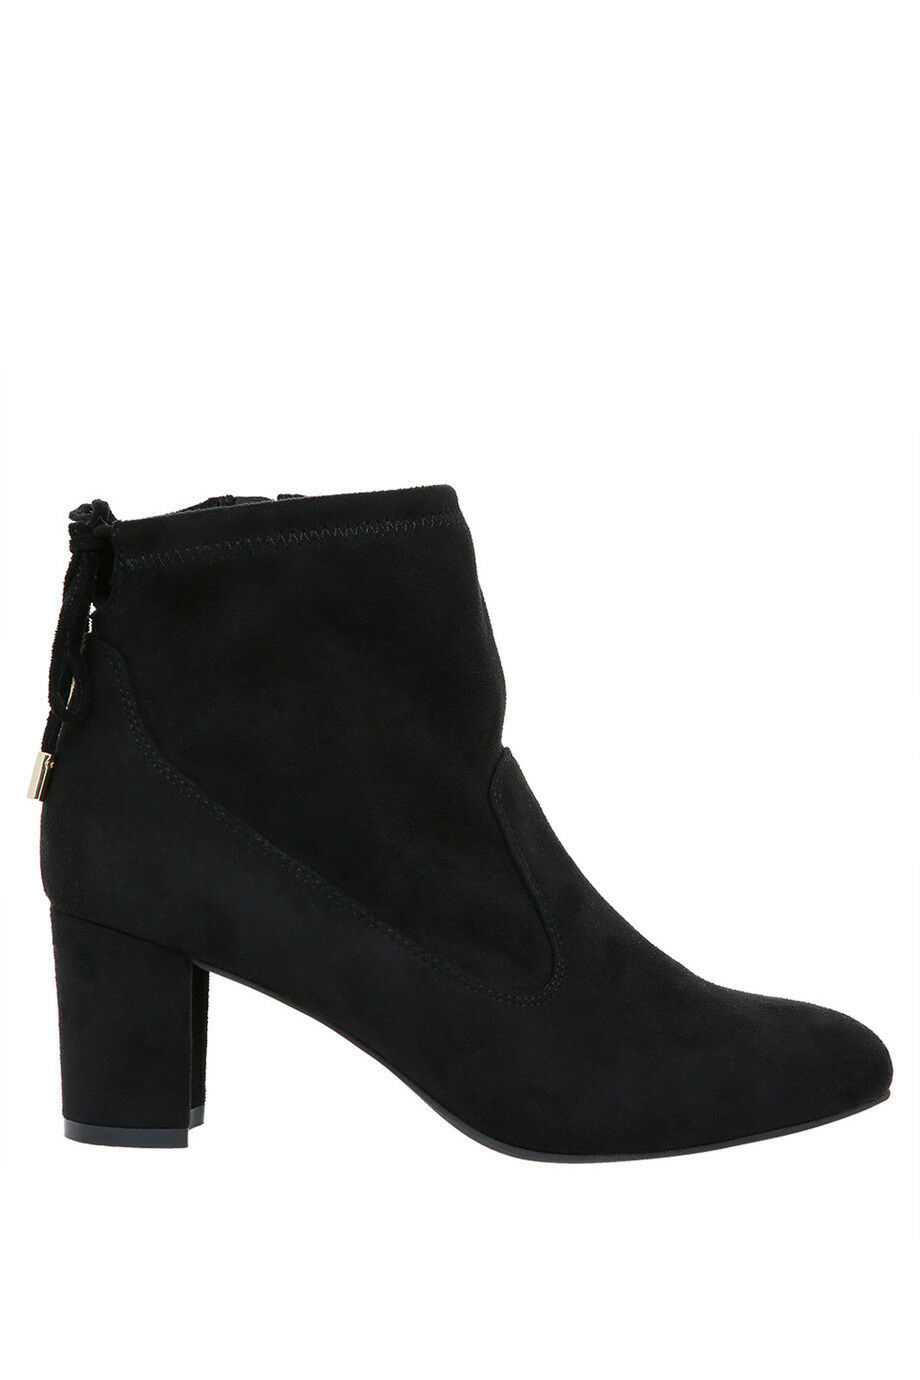 Man's/Woman's NEW Basque Anabelle Black Boot Cheap Ranked first in its class Perfect processing